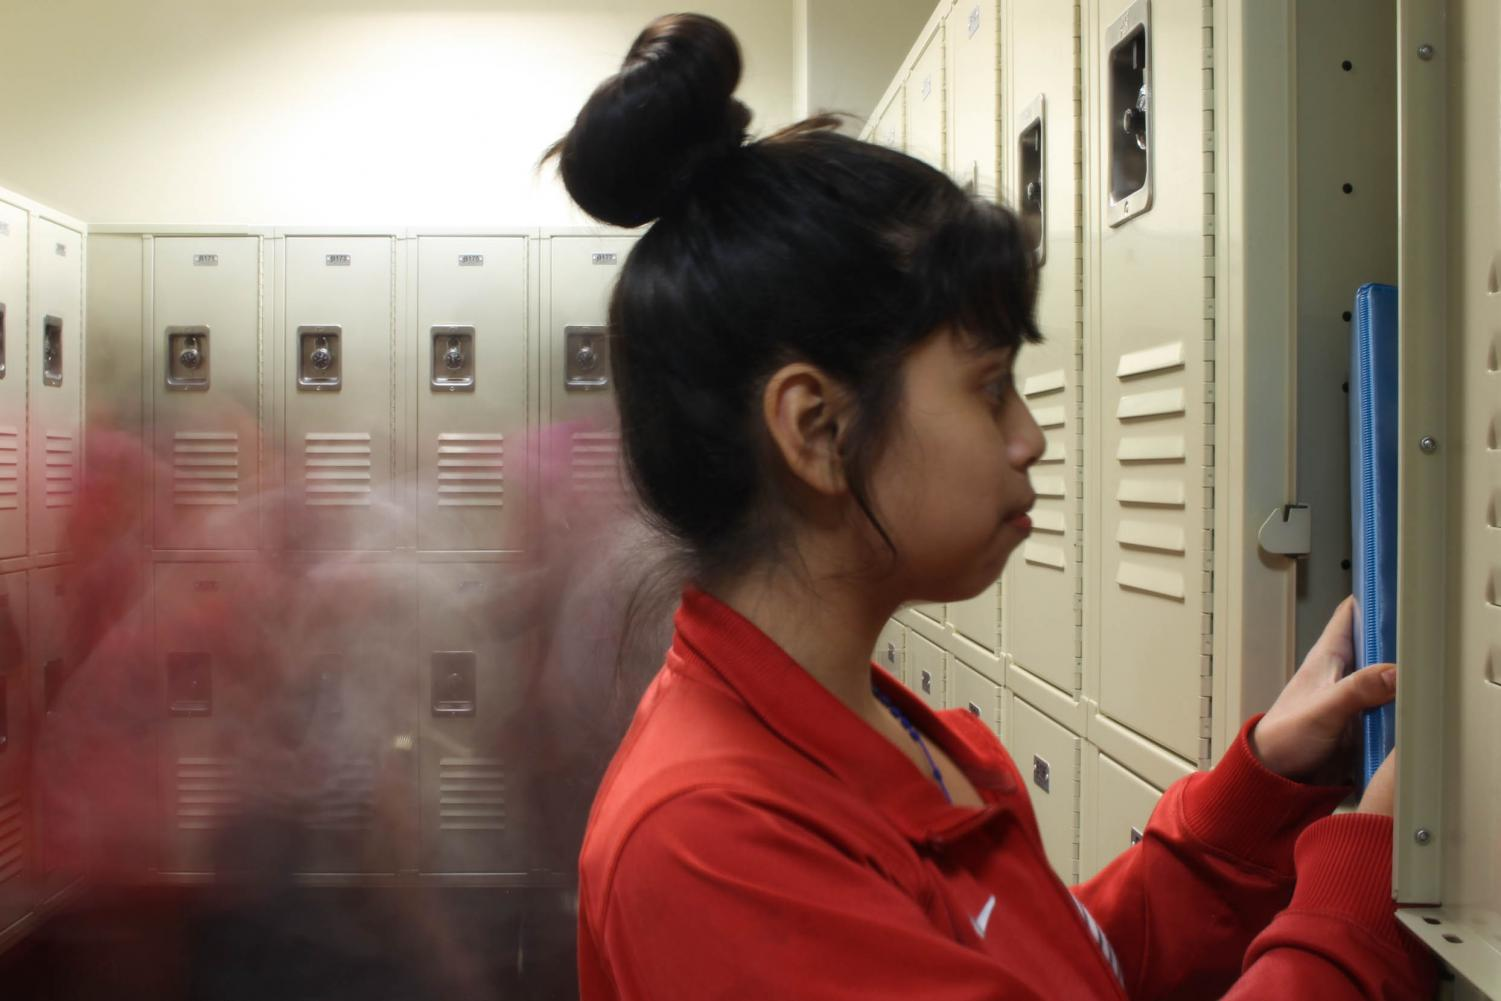 Eighth grader Jennifer Lopez poses looking through her locker. In the whirl of  everyday school life, students can feel overlooked.